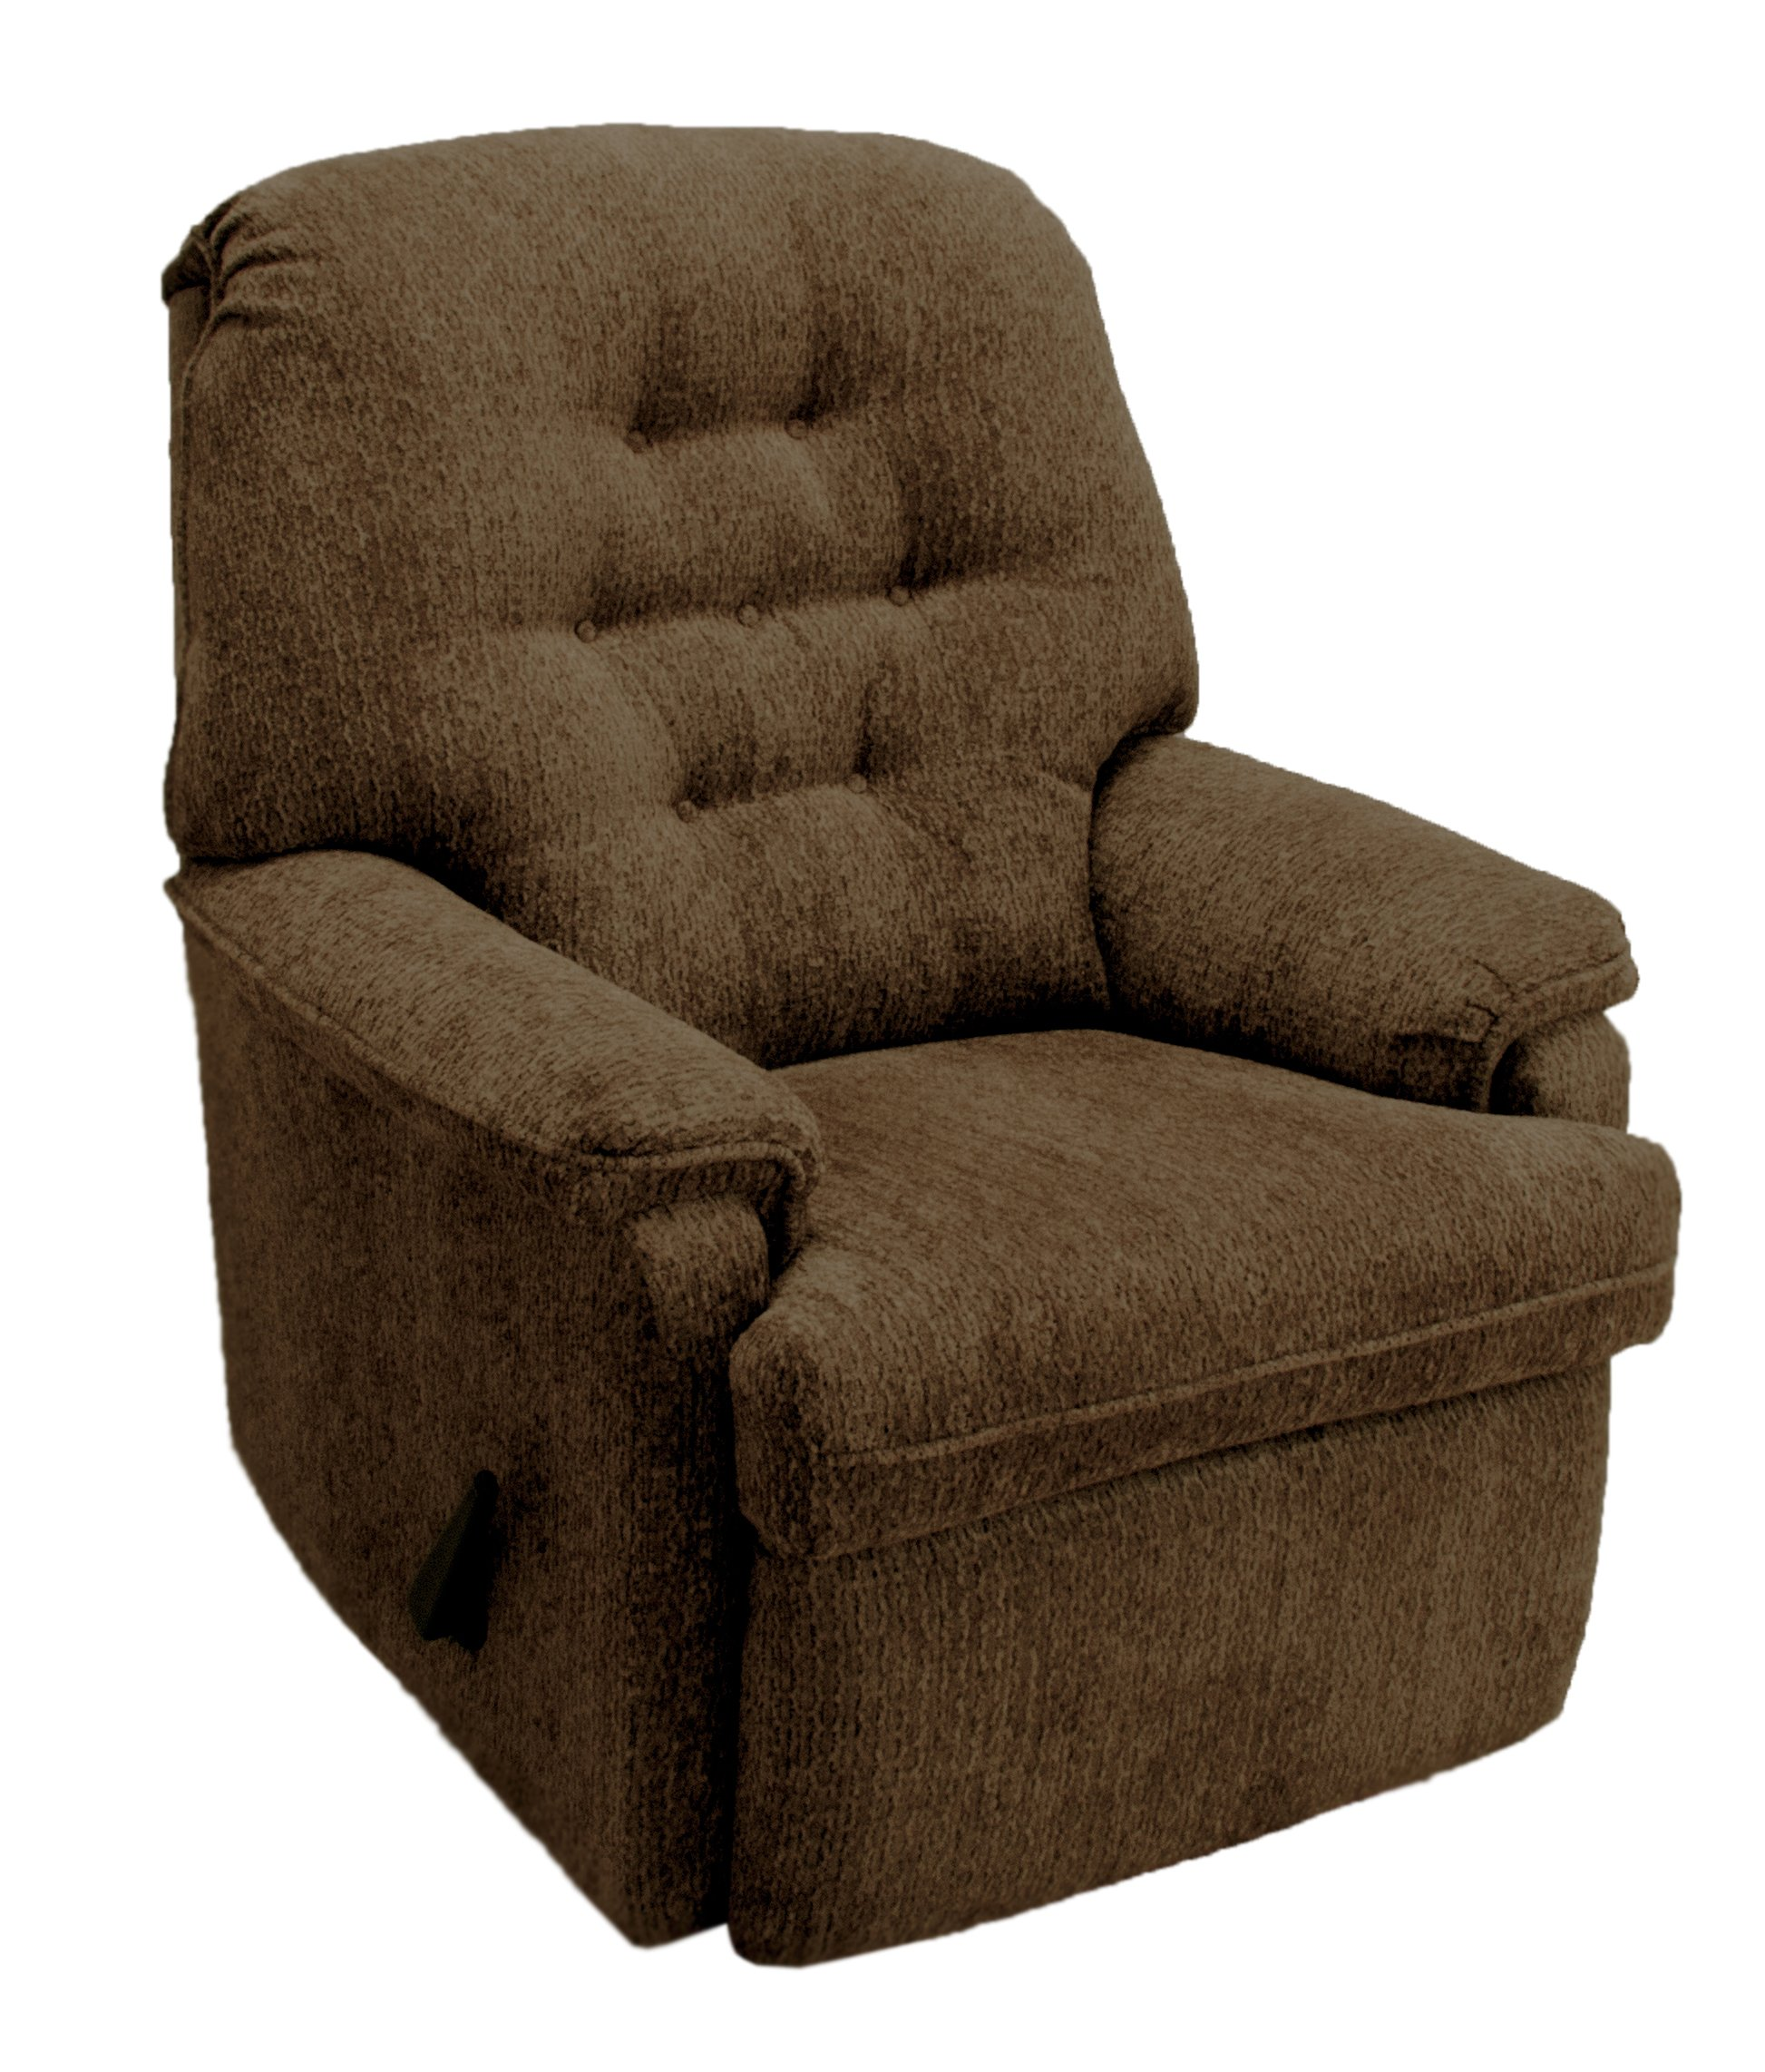 Franklin Mayfair Rocker Recliner, Café by Franklin